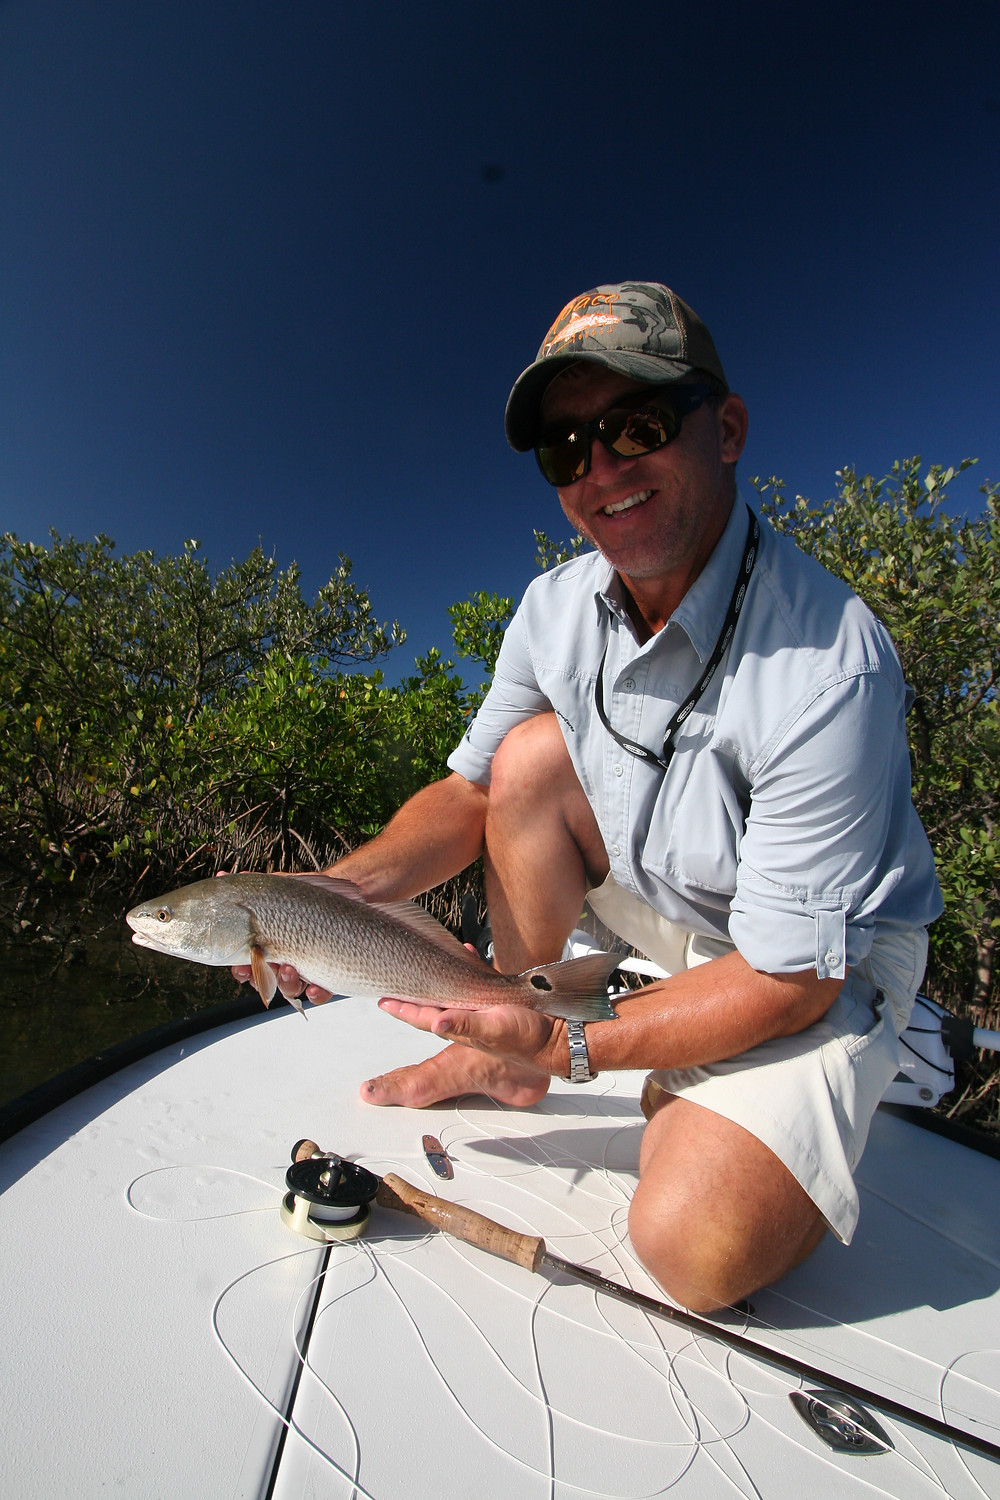 Captain John Tarr Fishing Charters|Tailhunter Outdoor Adventures|Florida|Redfish on Fly